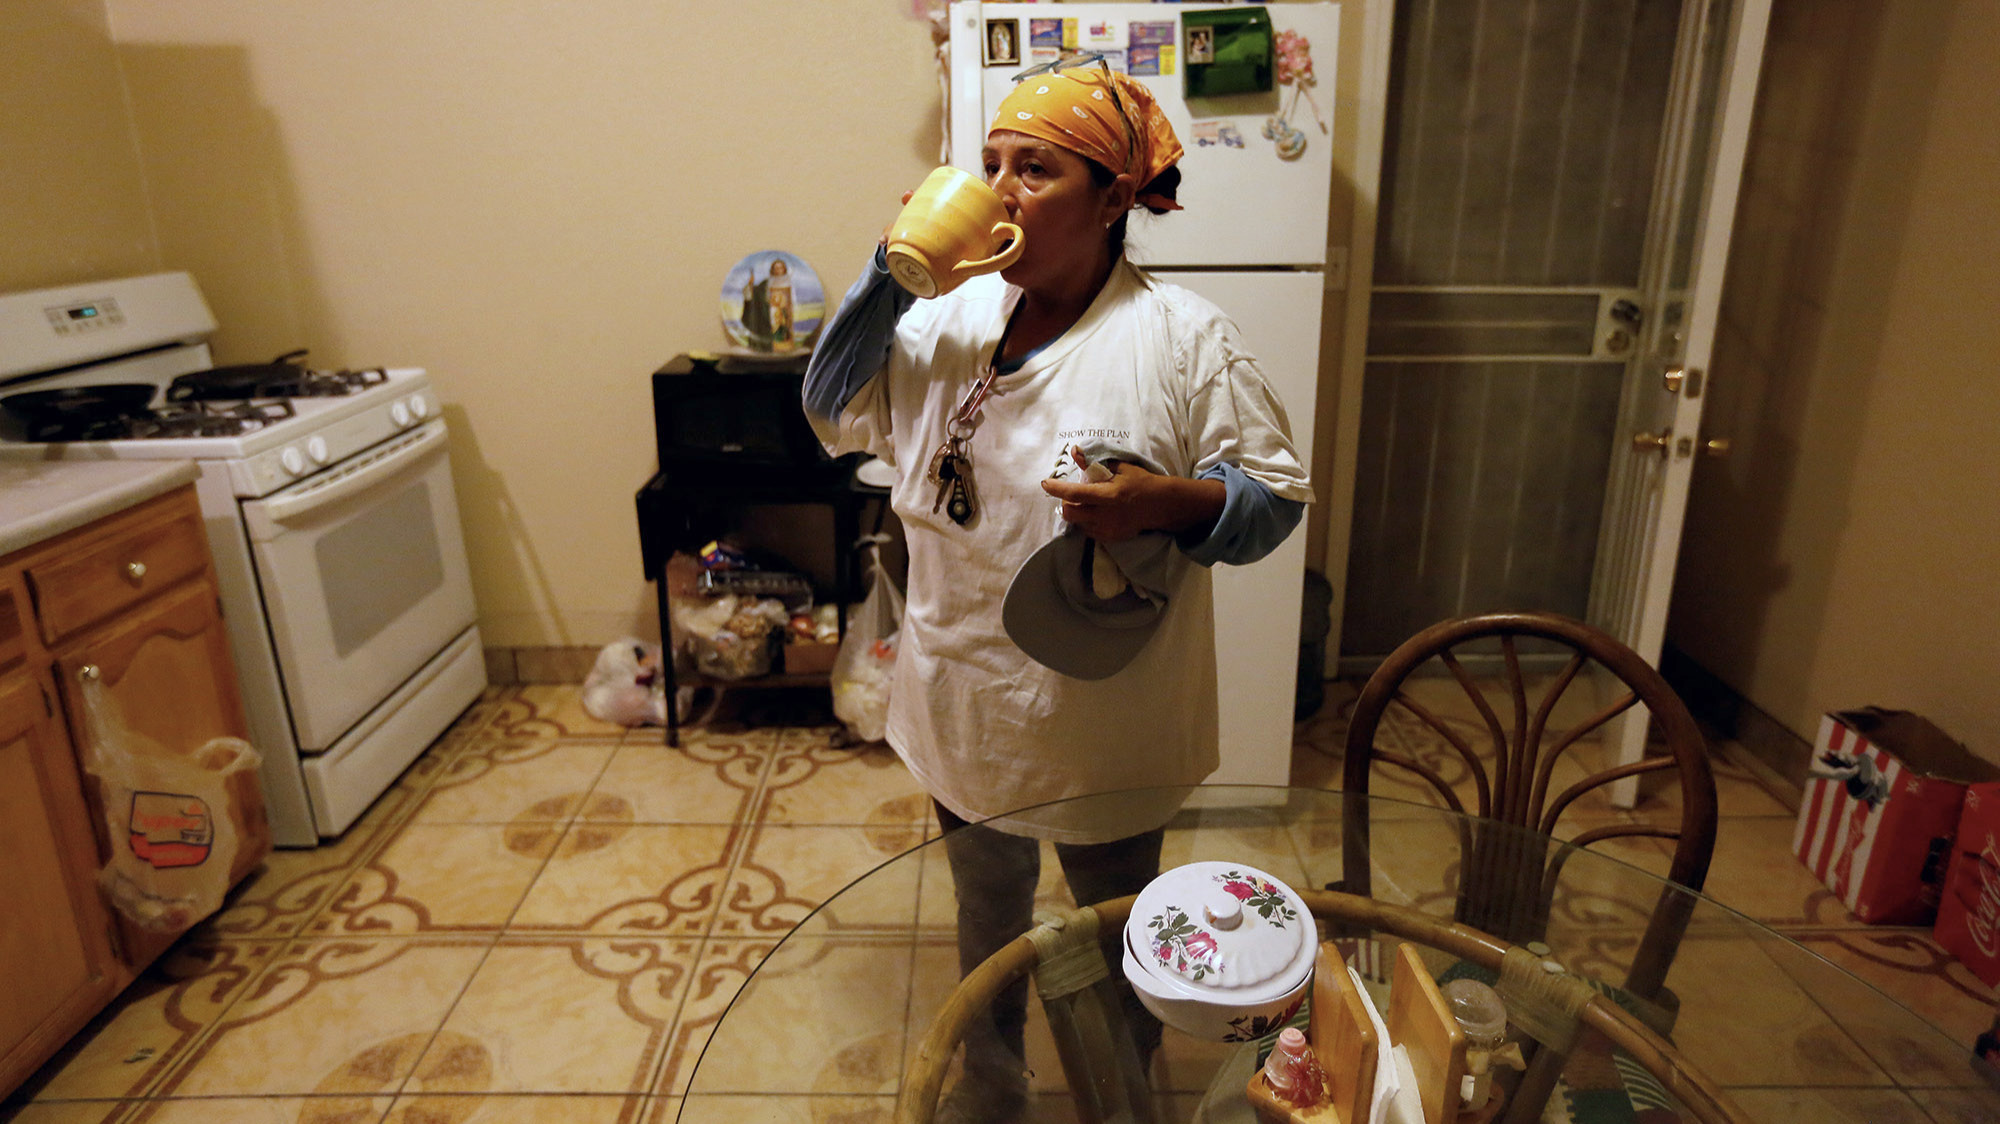 Lourdes Cardenas, 53, after preparing lunch has a cup of coffee before leaving a two-bedroom house she rents with her husband, nephew and five roommates, to pick grapes in Fresno.